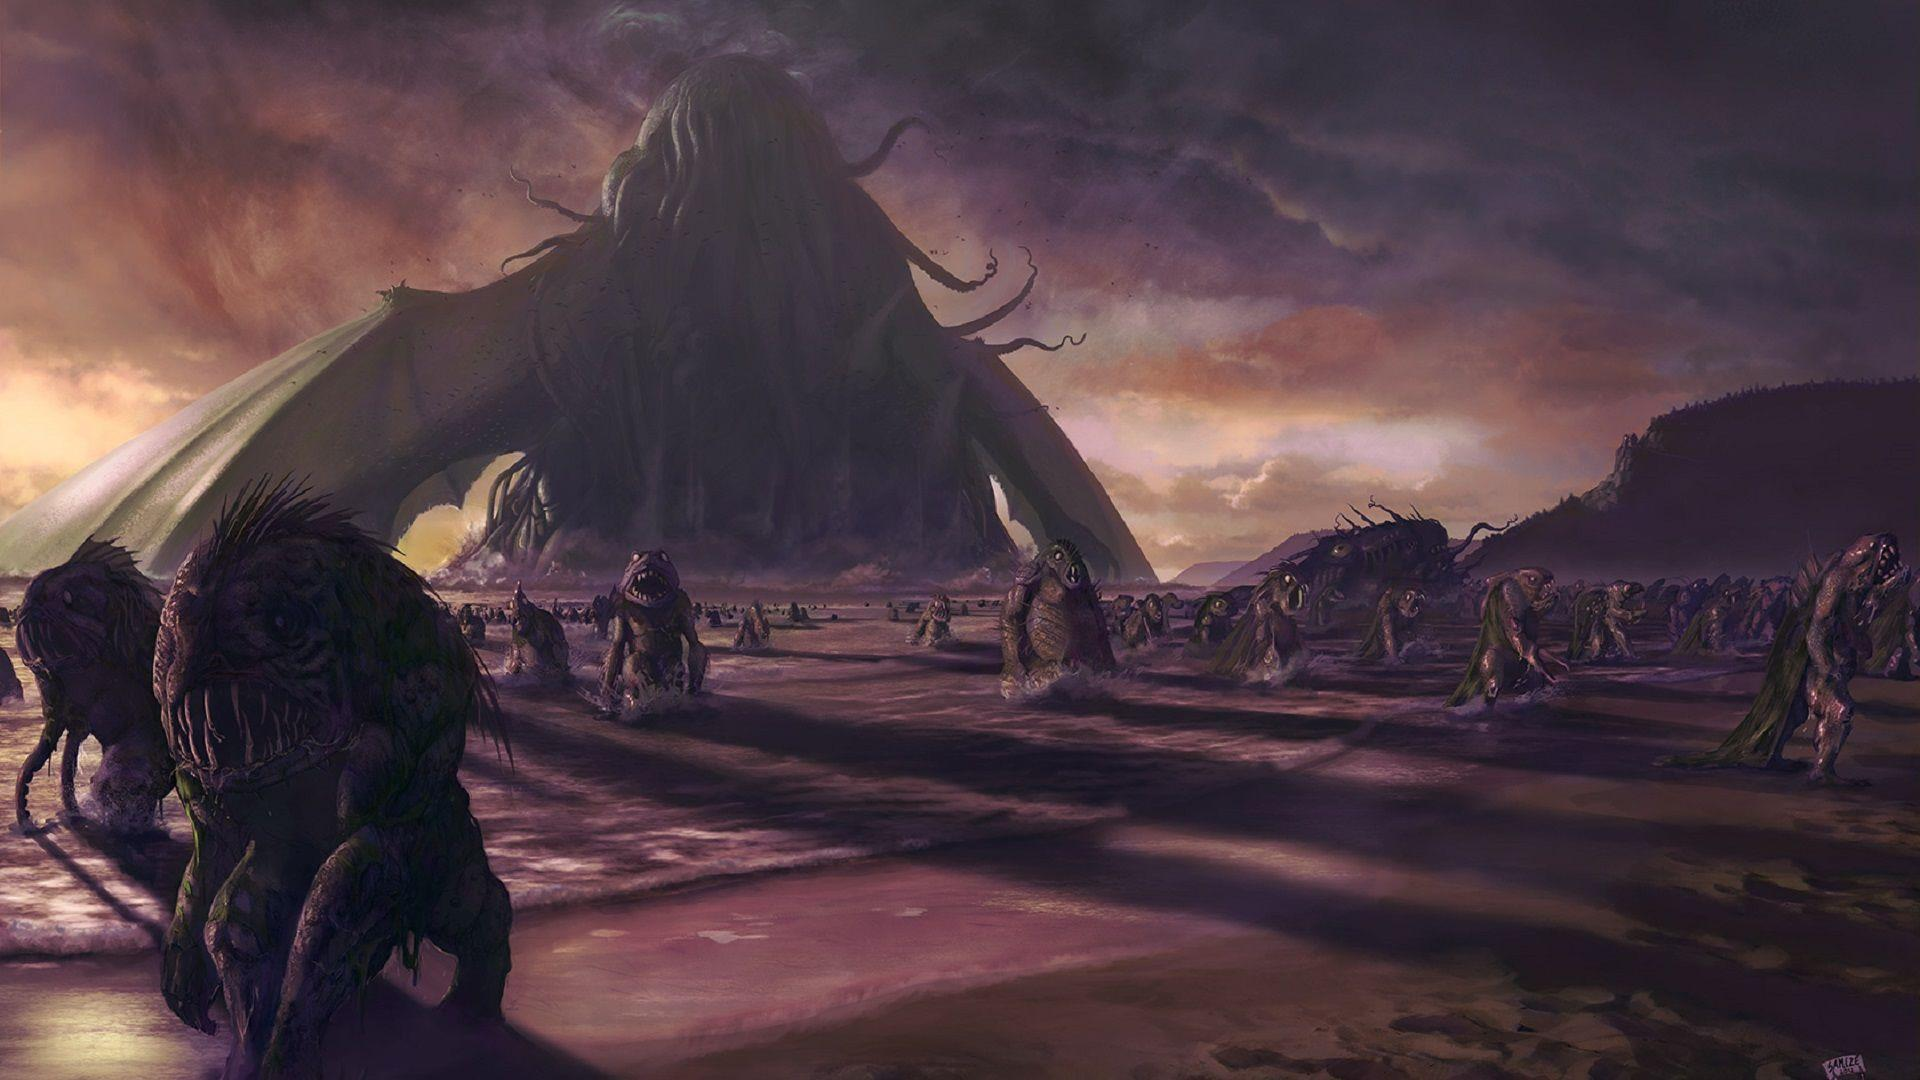 Image For > Cthulhu Wallpapers 1600x900